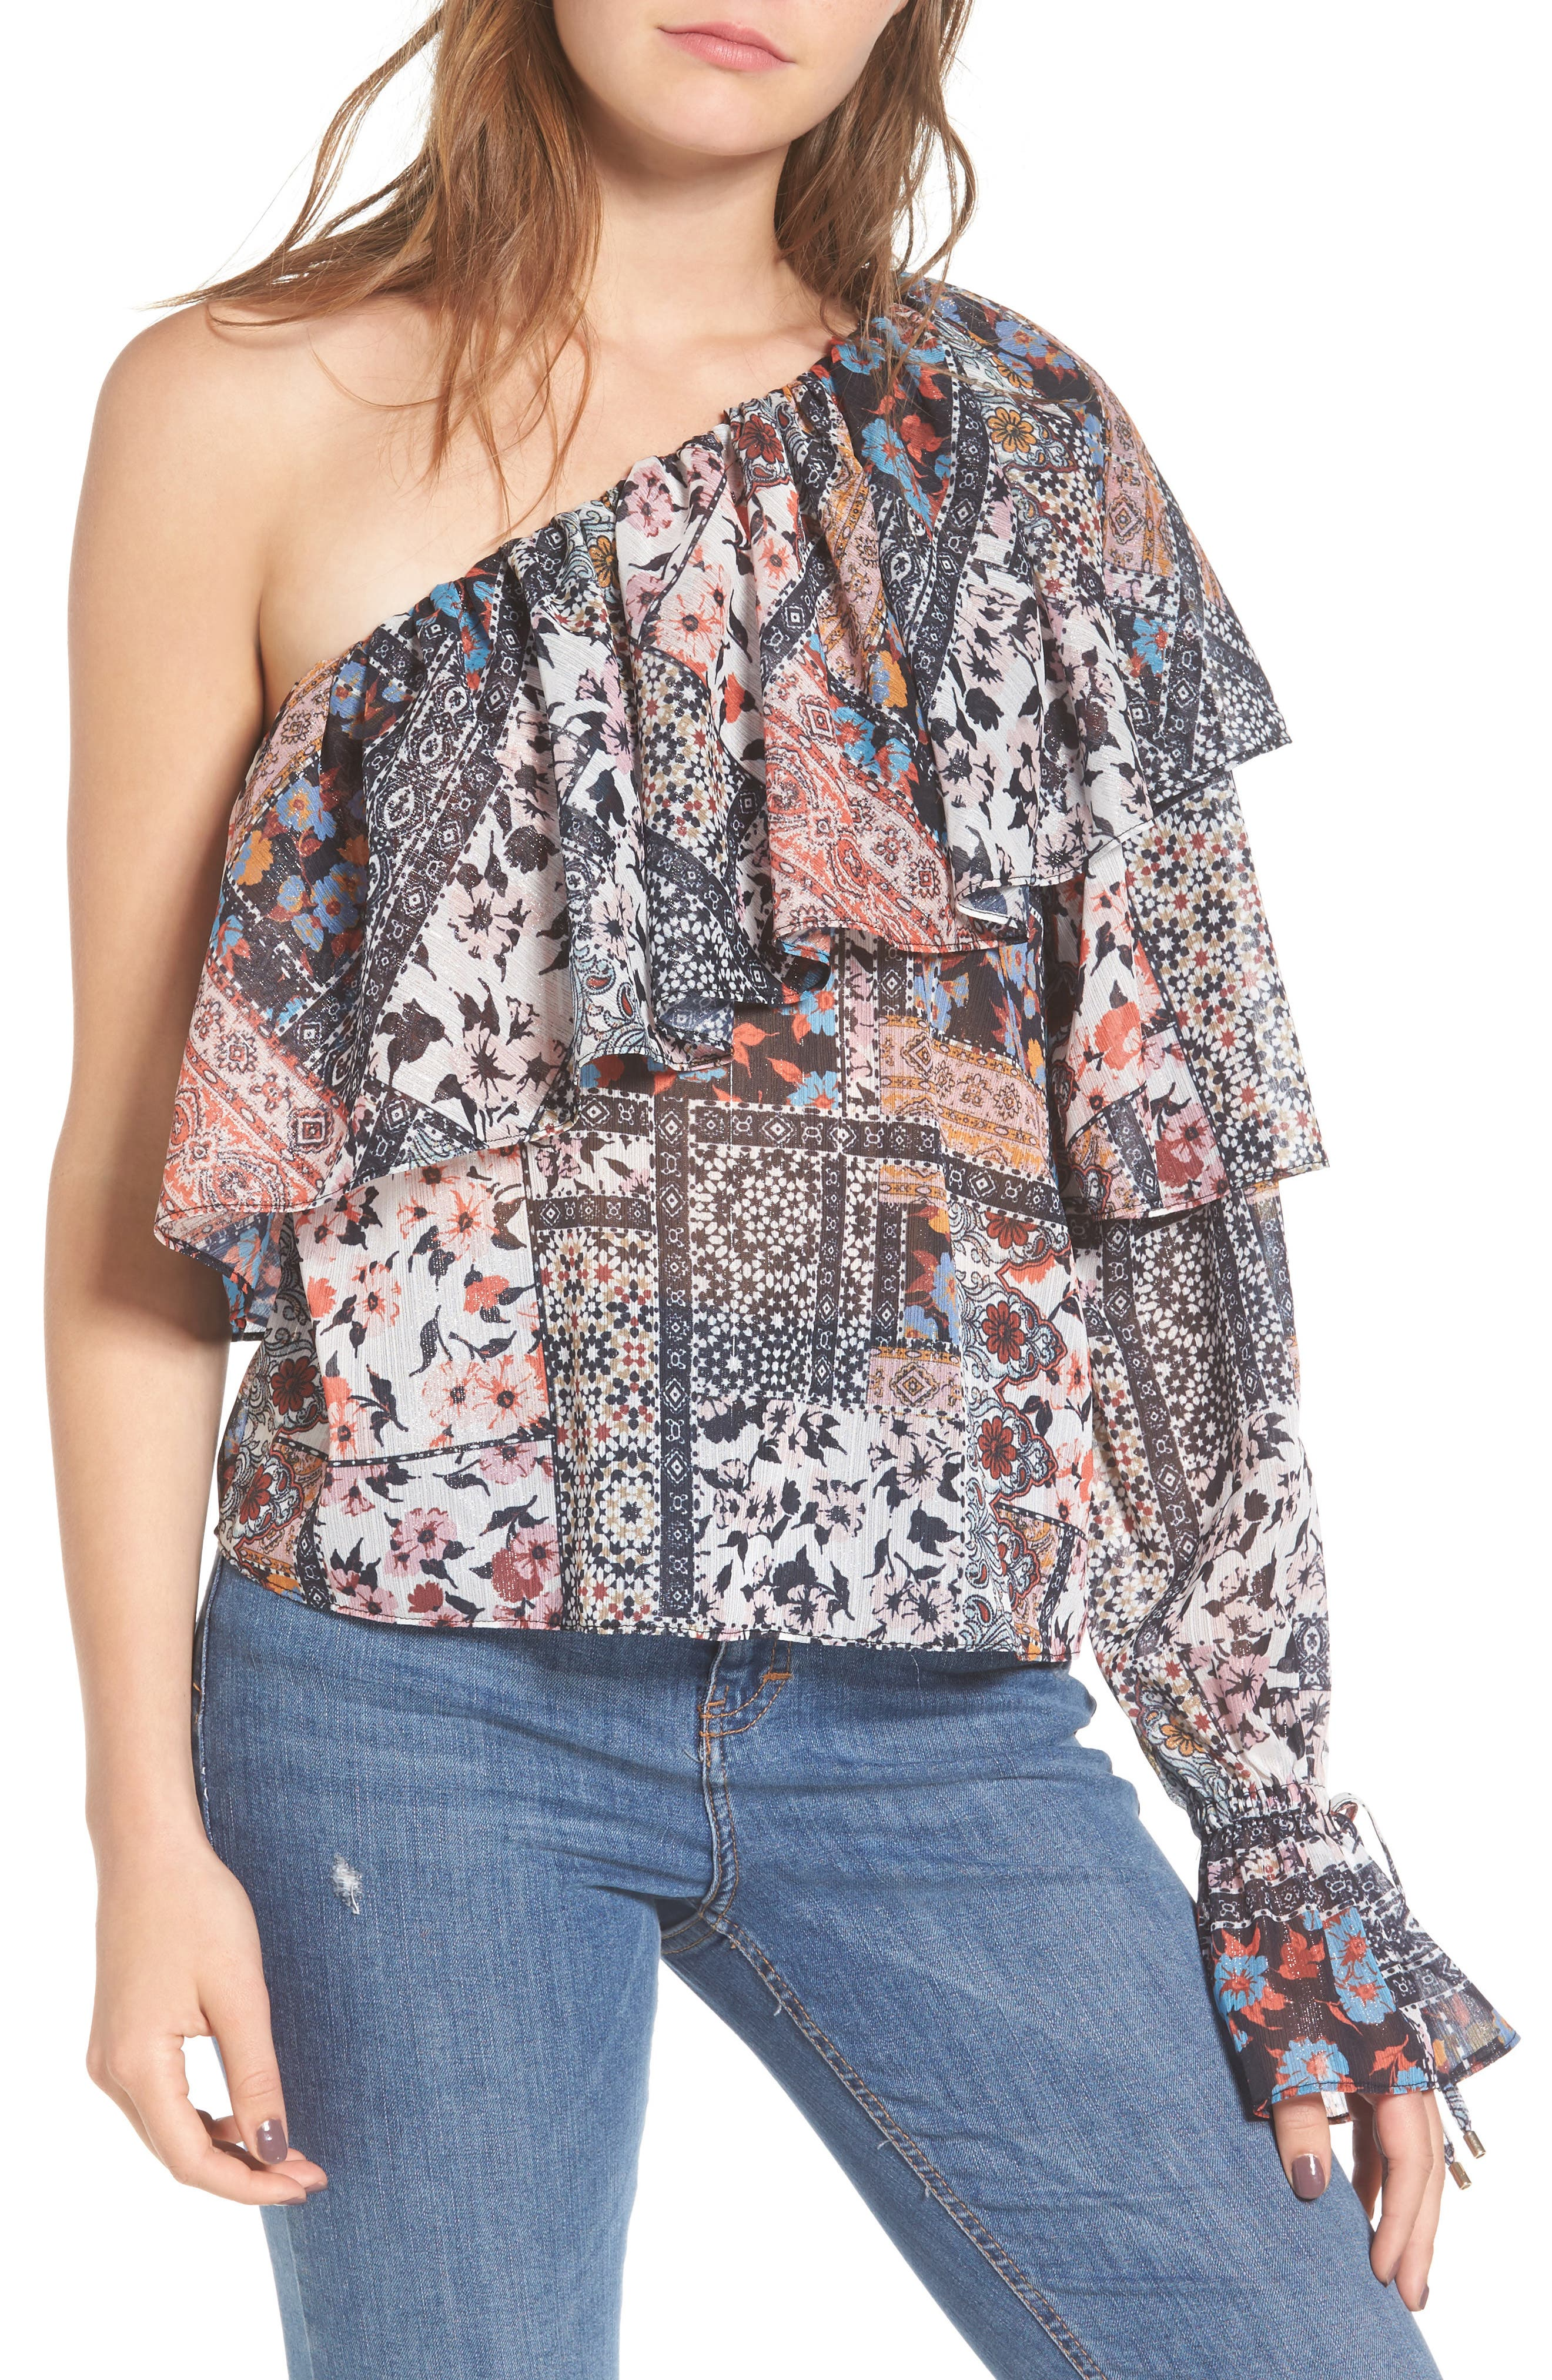 devlin Madora One-Shoulder Blouse